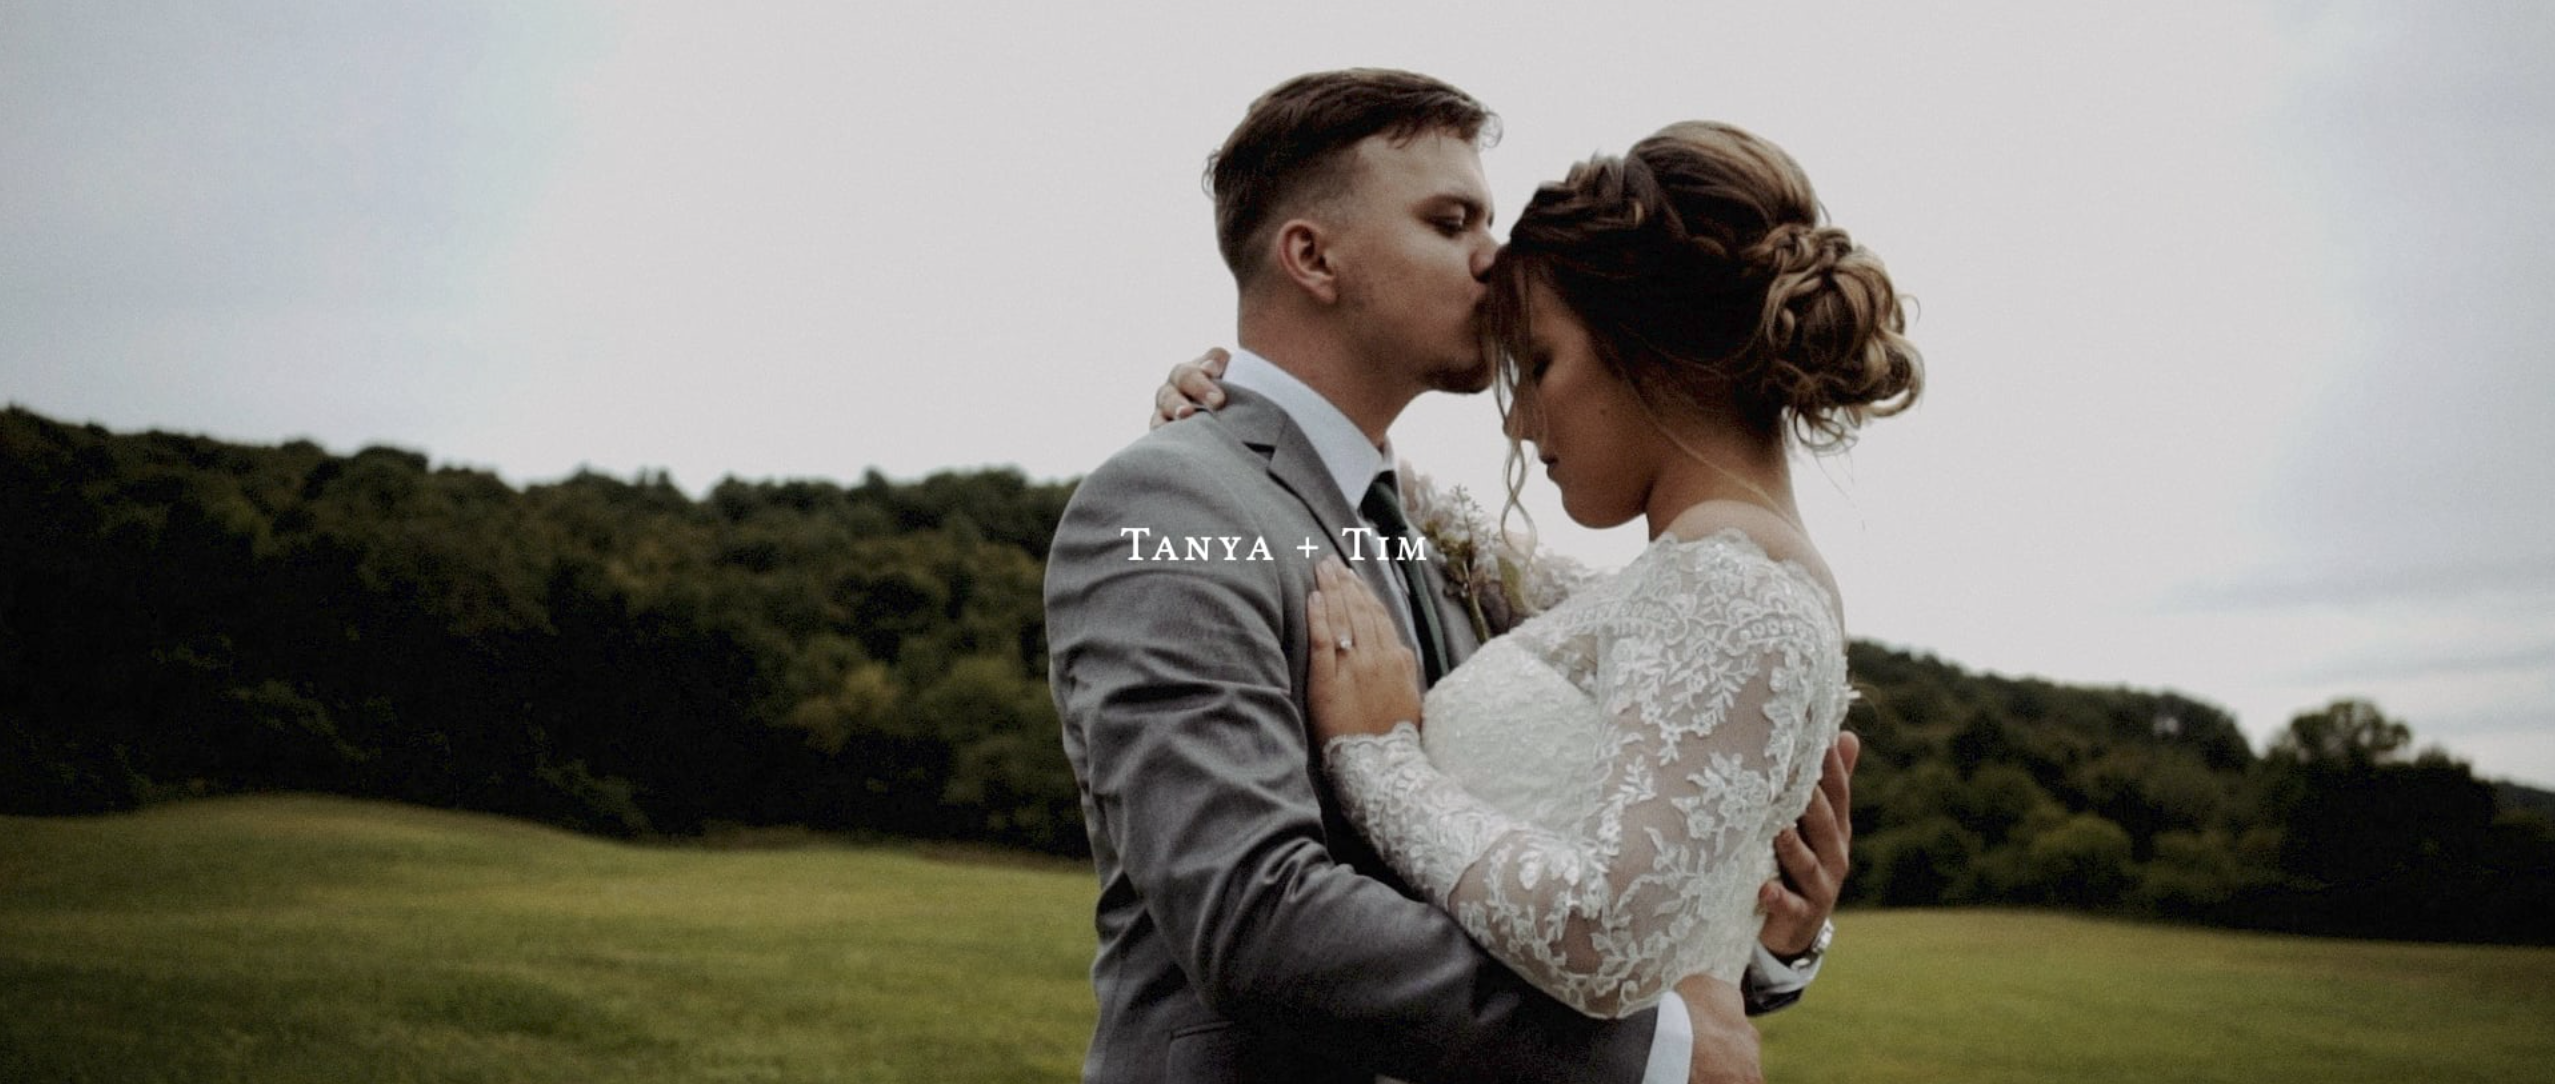 Tanya + Tim | Oneida, New York | wolf oaks acre